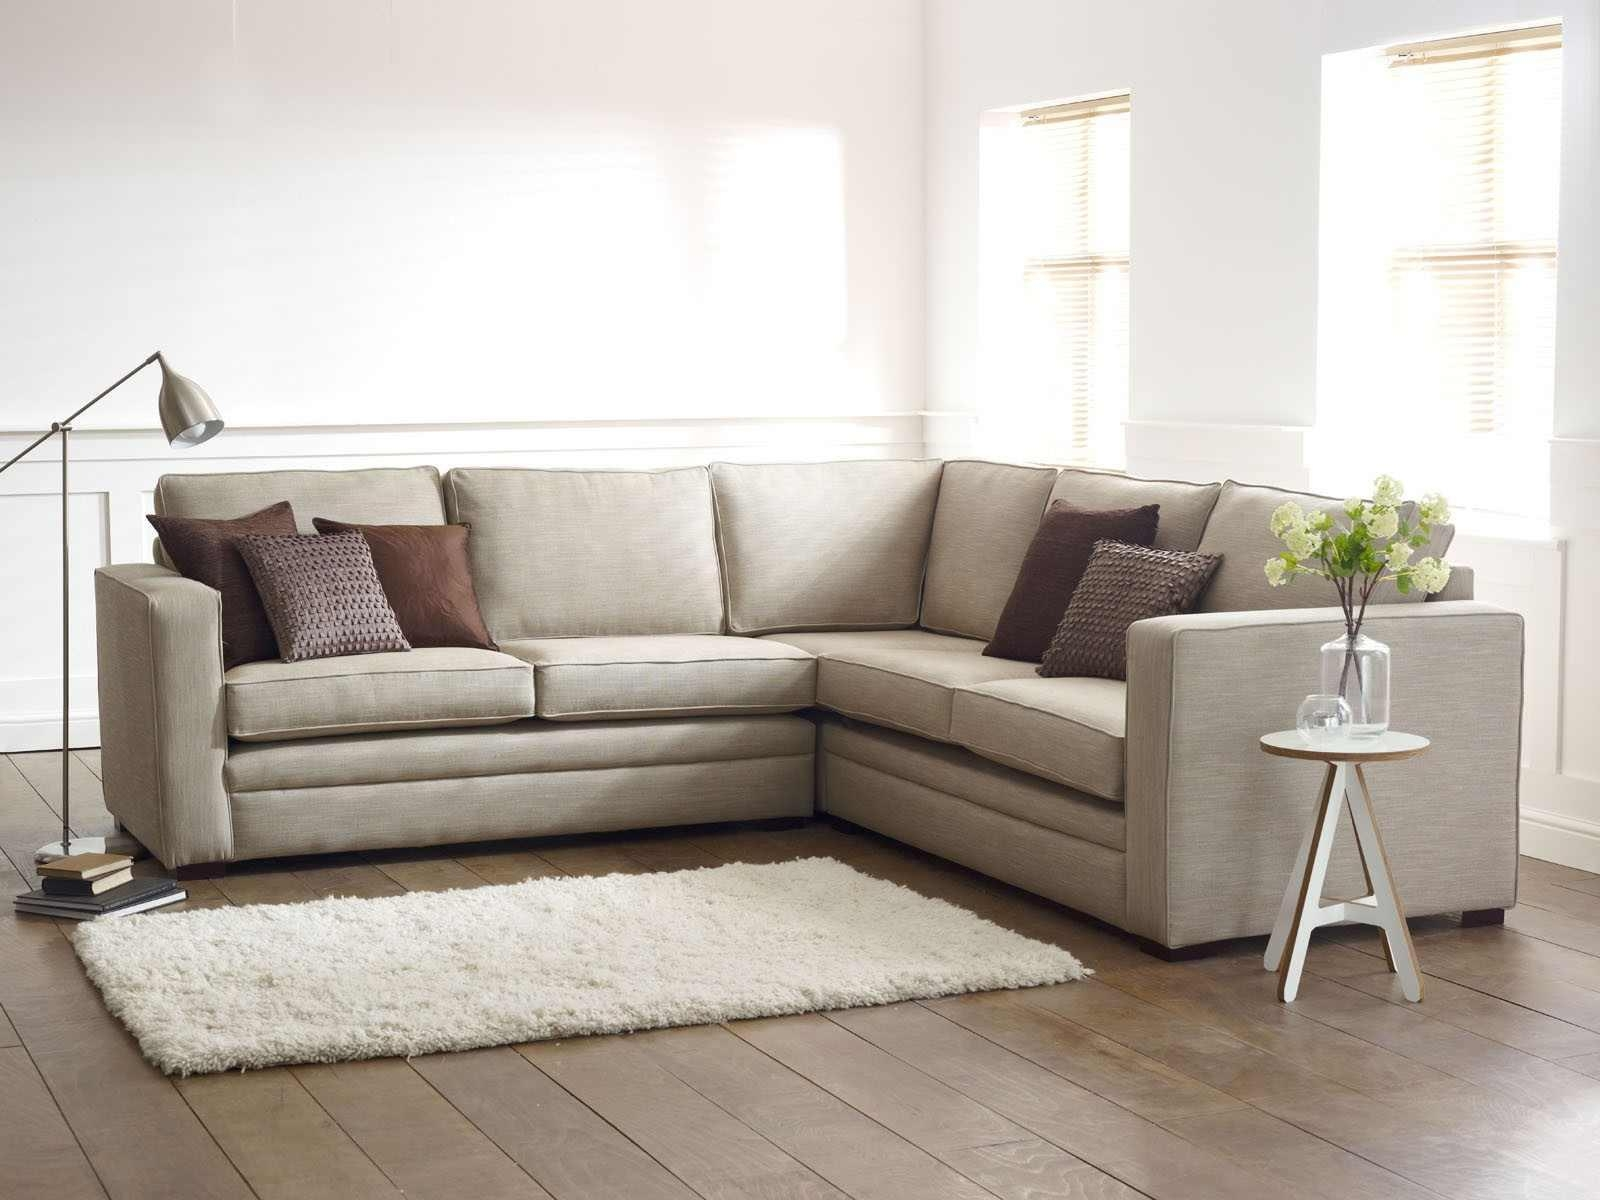 Small L Shaped Couch Ikea – Creditrestore In Small L Shaped Sofas (View 2 of 20)